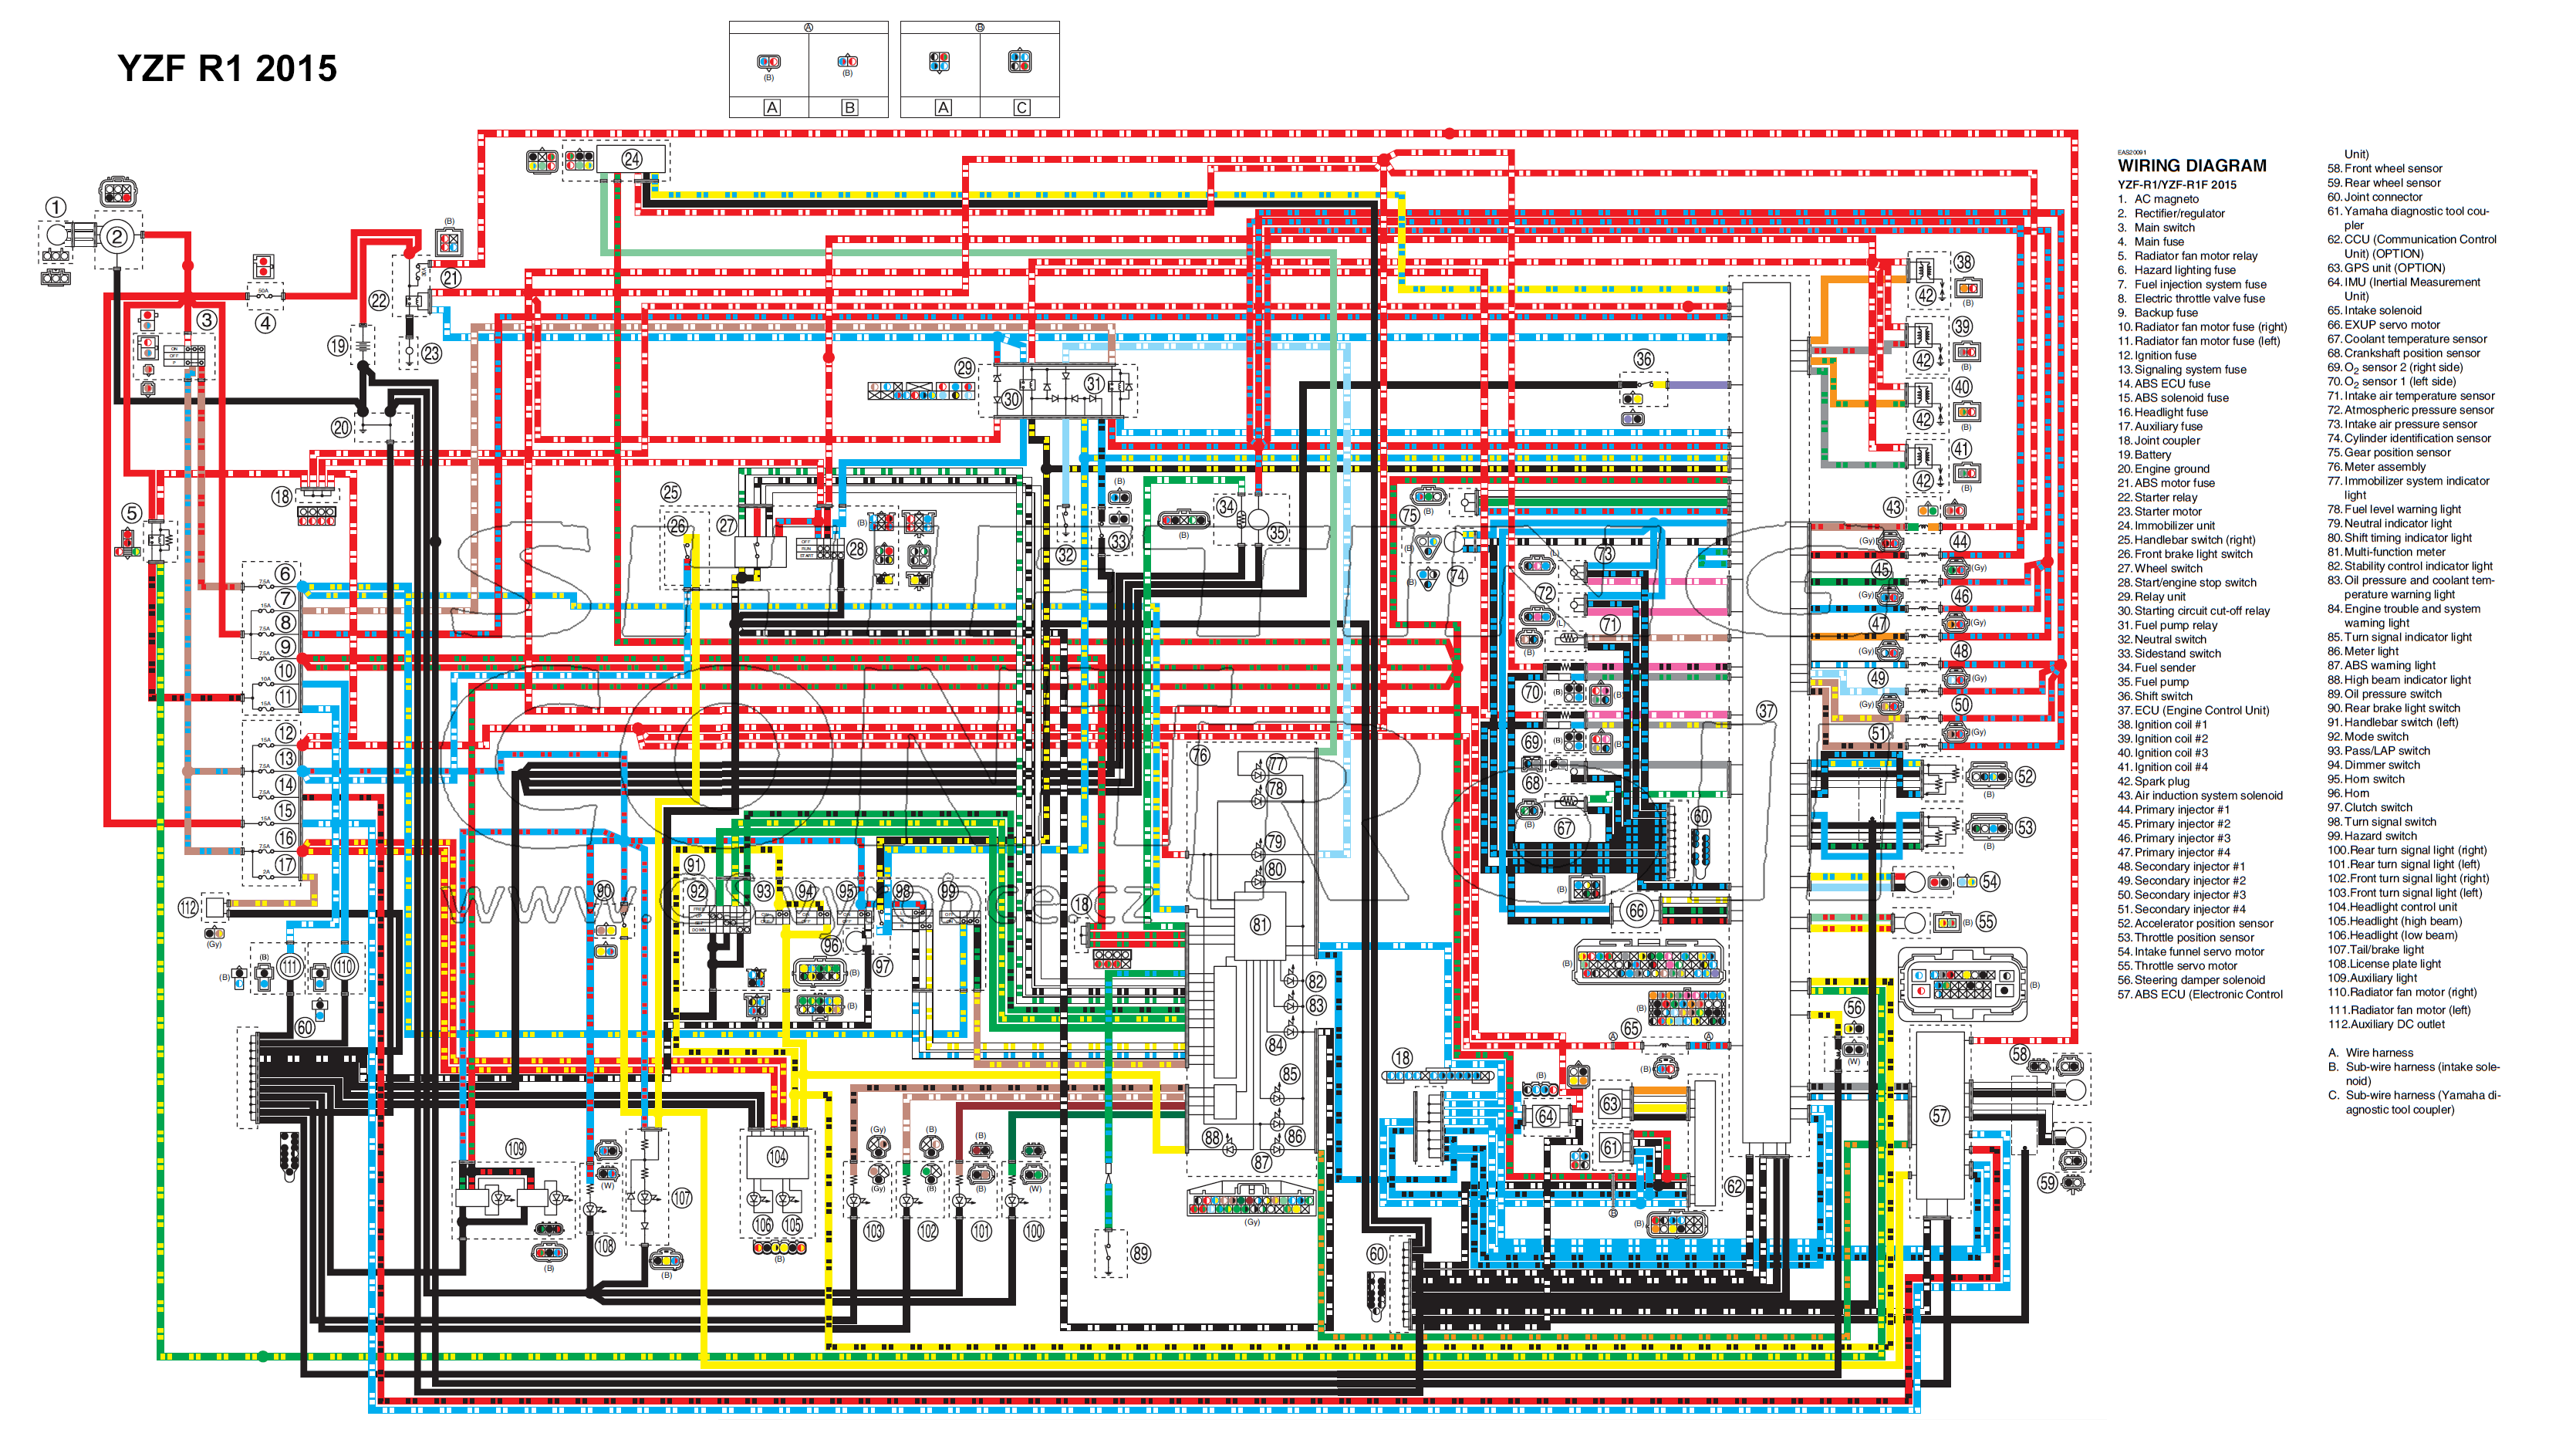 yamaha r1 wiring diagram 2000 Images Gallery